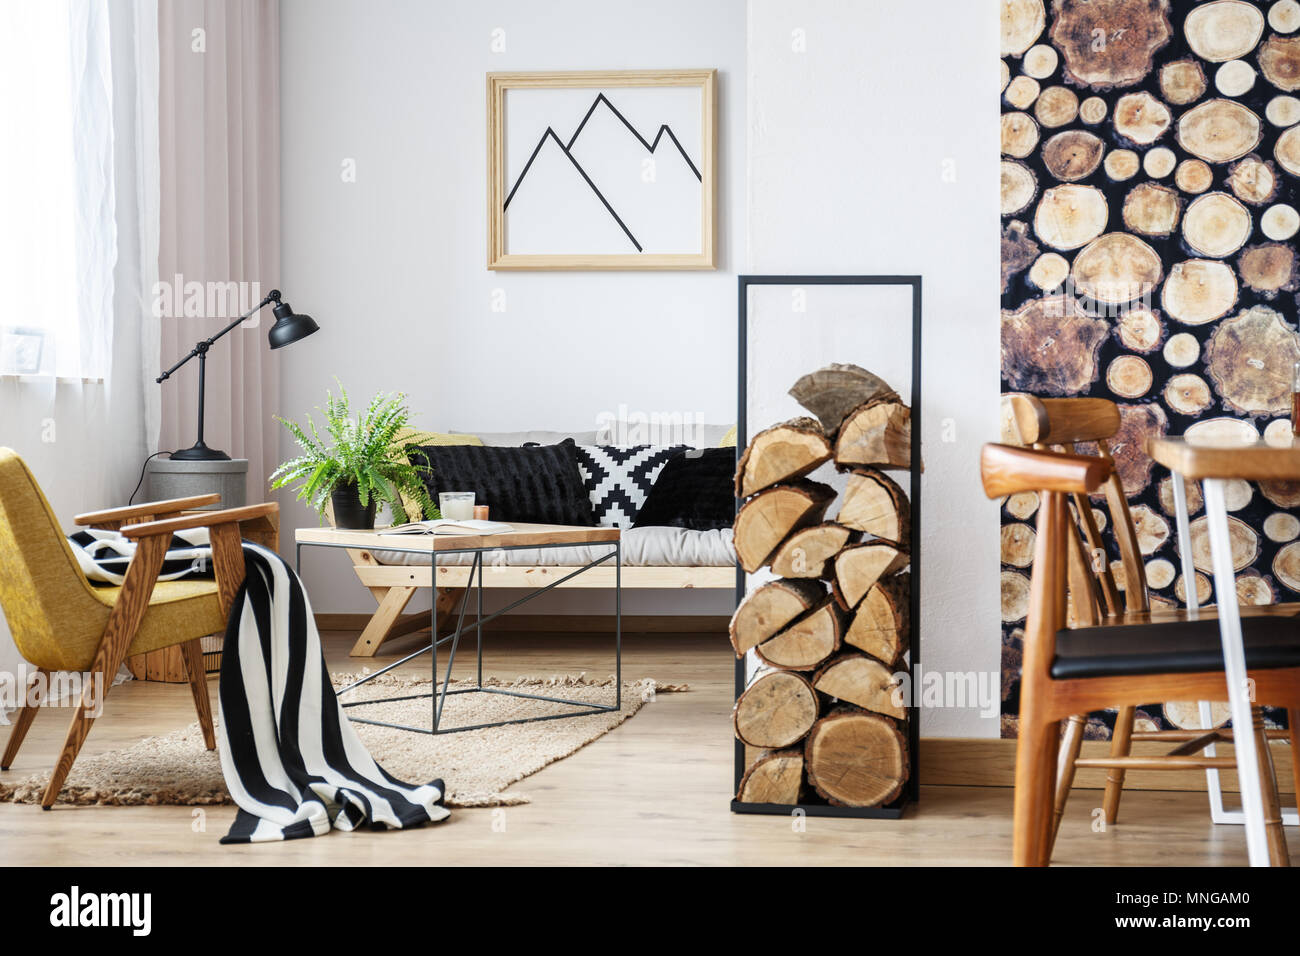 Cozy winter interior design for minimalist with wooden accessories, warm colors and fire logs - Stock Image